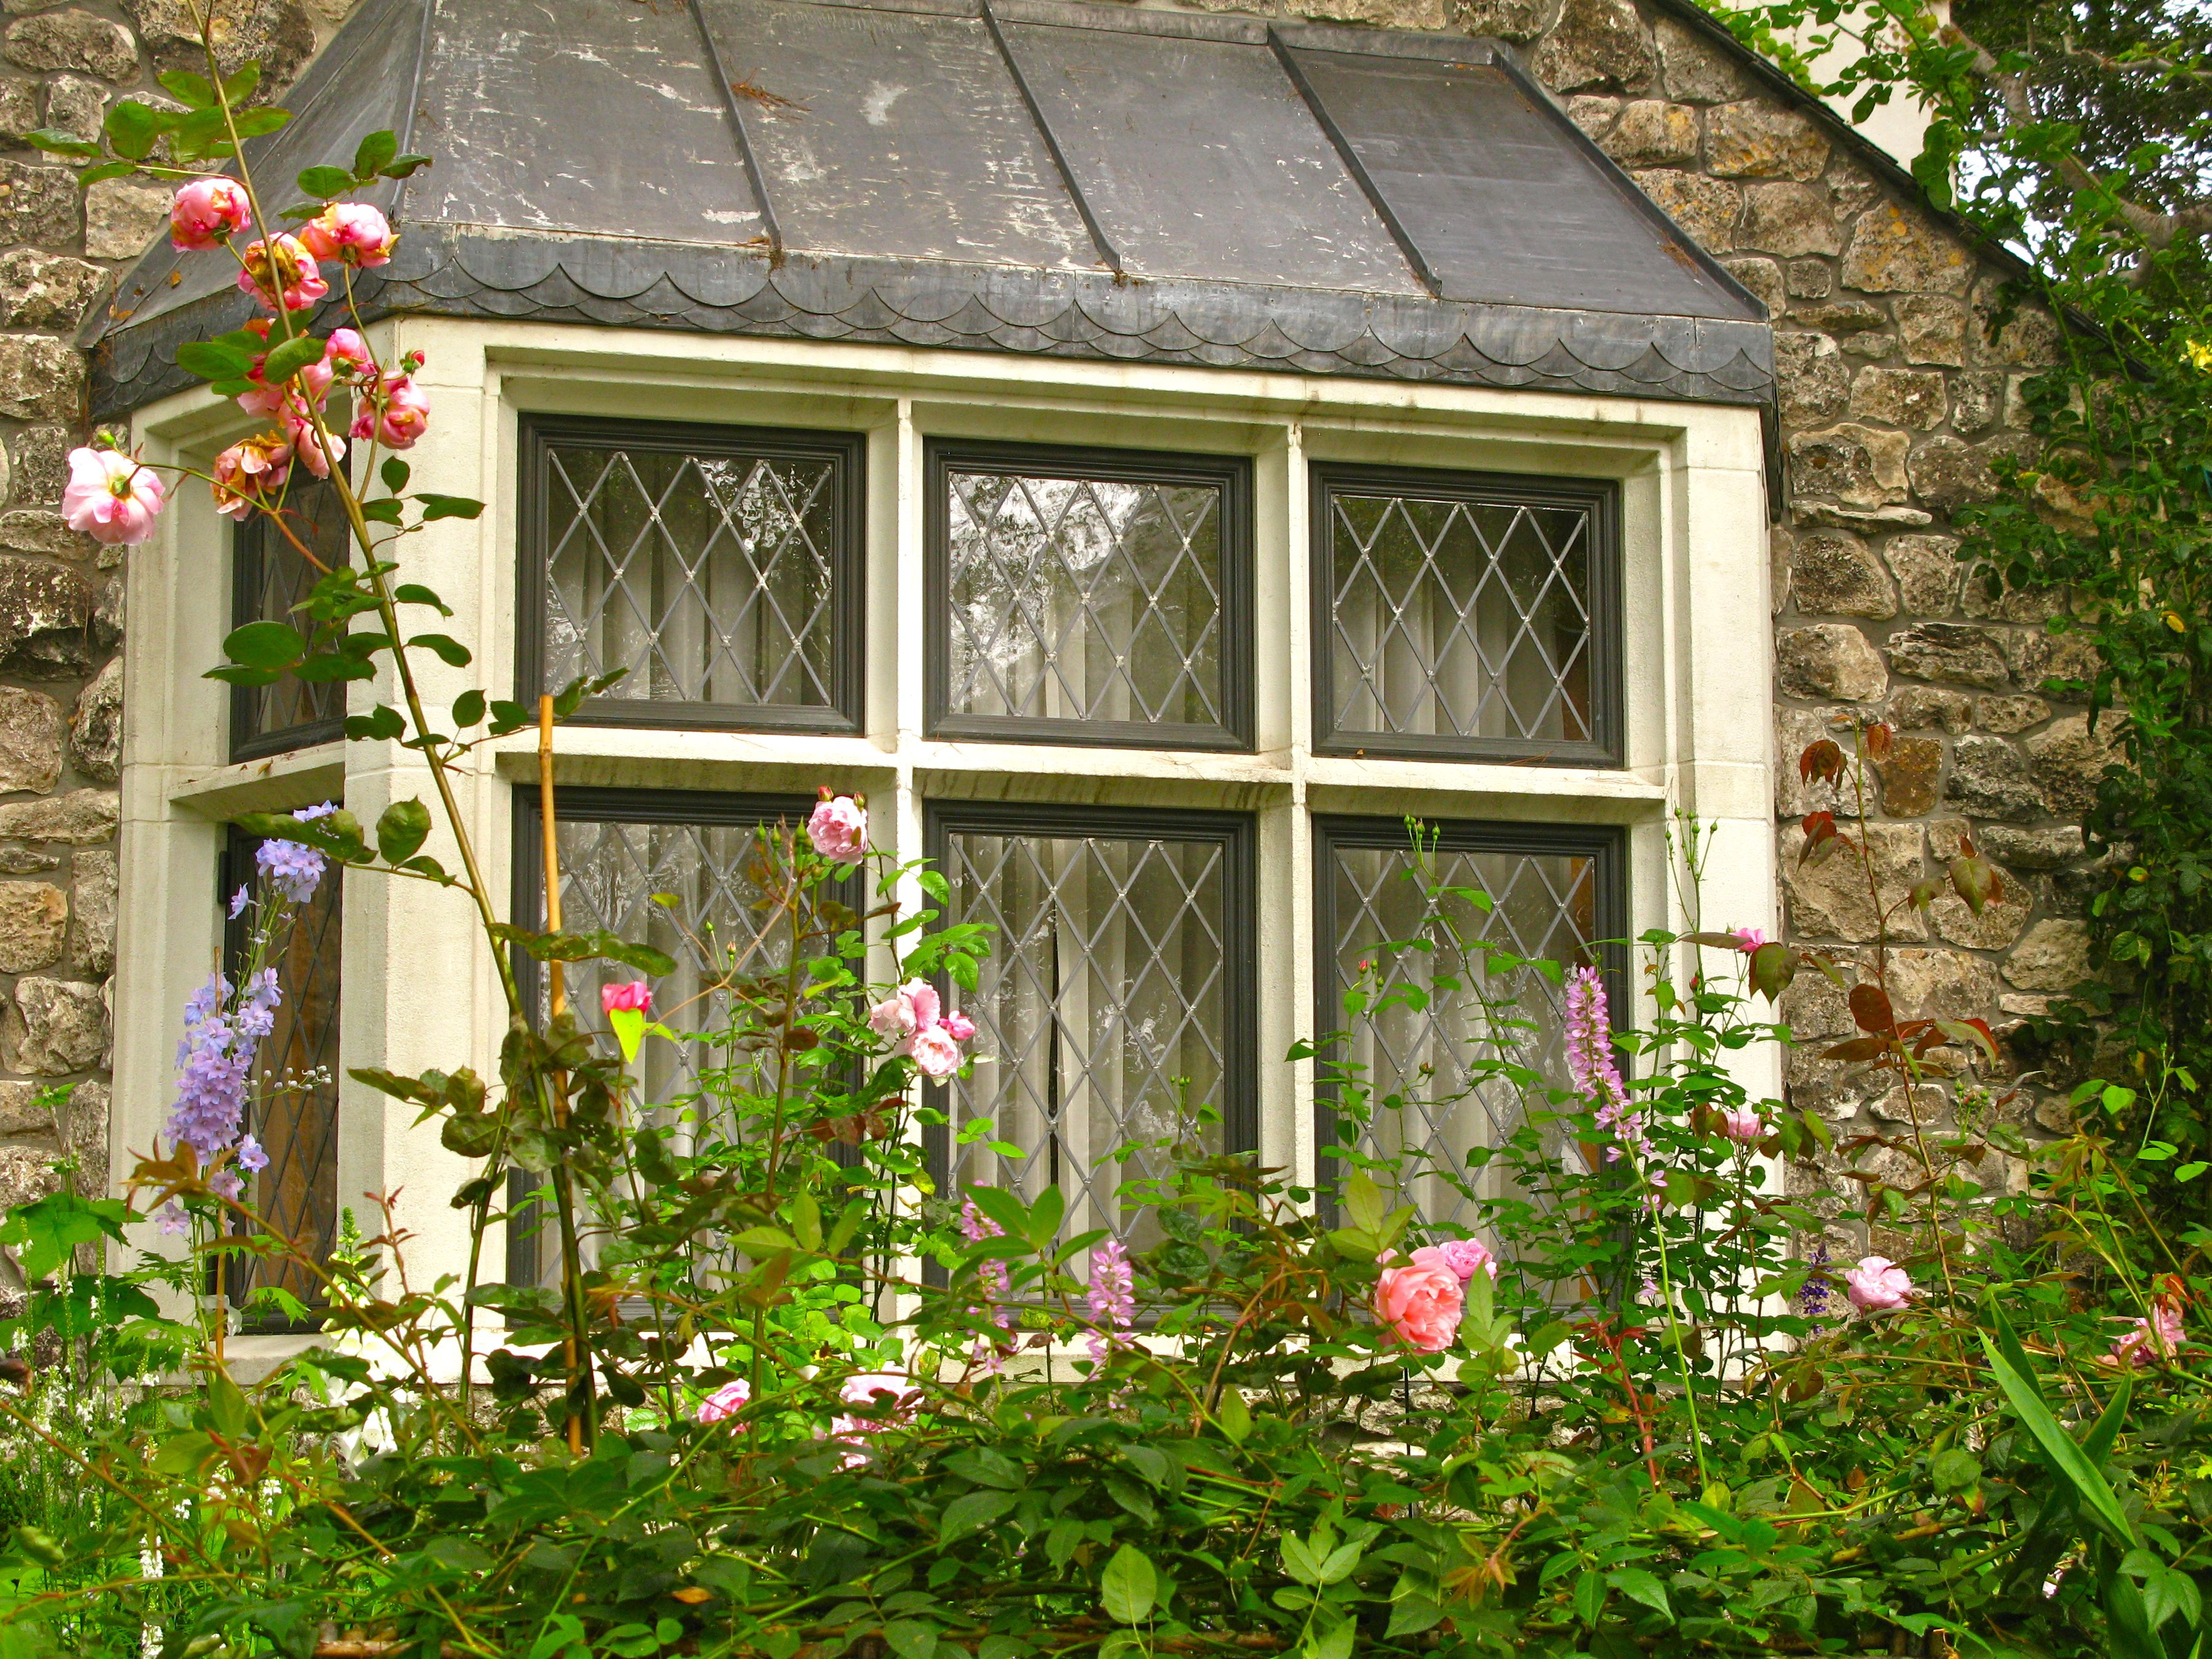 Diamond Paned Windows On Fairytale Cottage Doesn T Get Any Better Bedroom Cottage Windows Fairytale Cottage Cottage